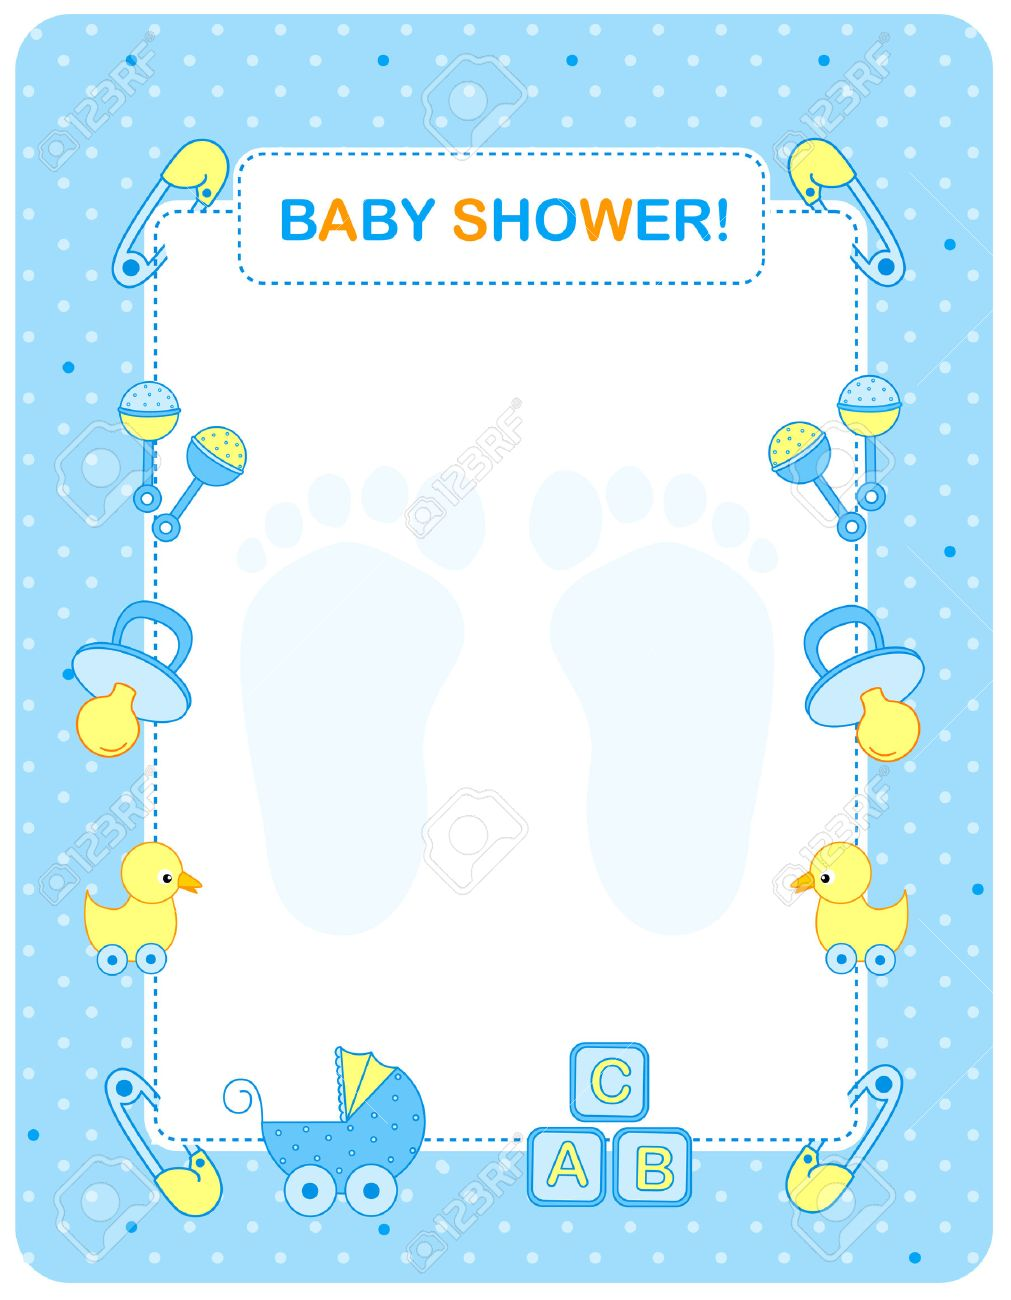 Illustration Of A Baby Shower Invitation Card / Border / Frame For A Boy  Stockfoto